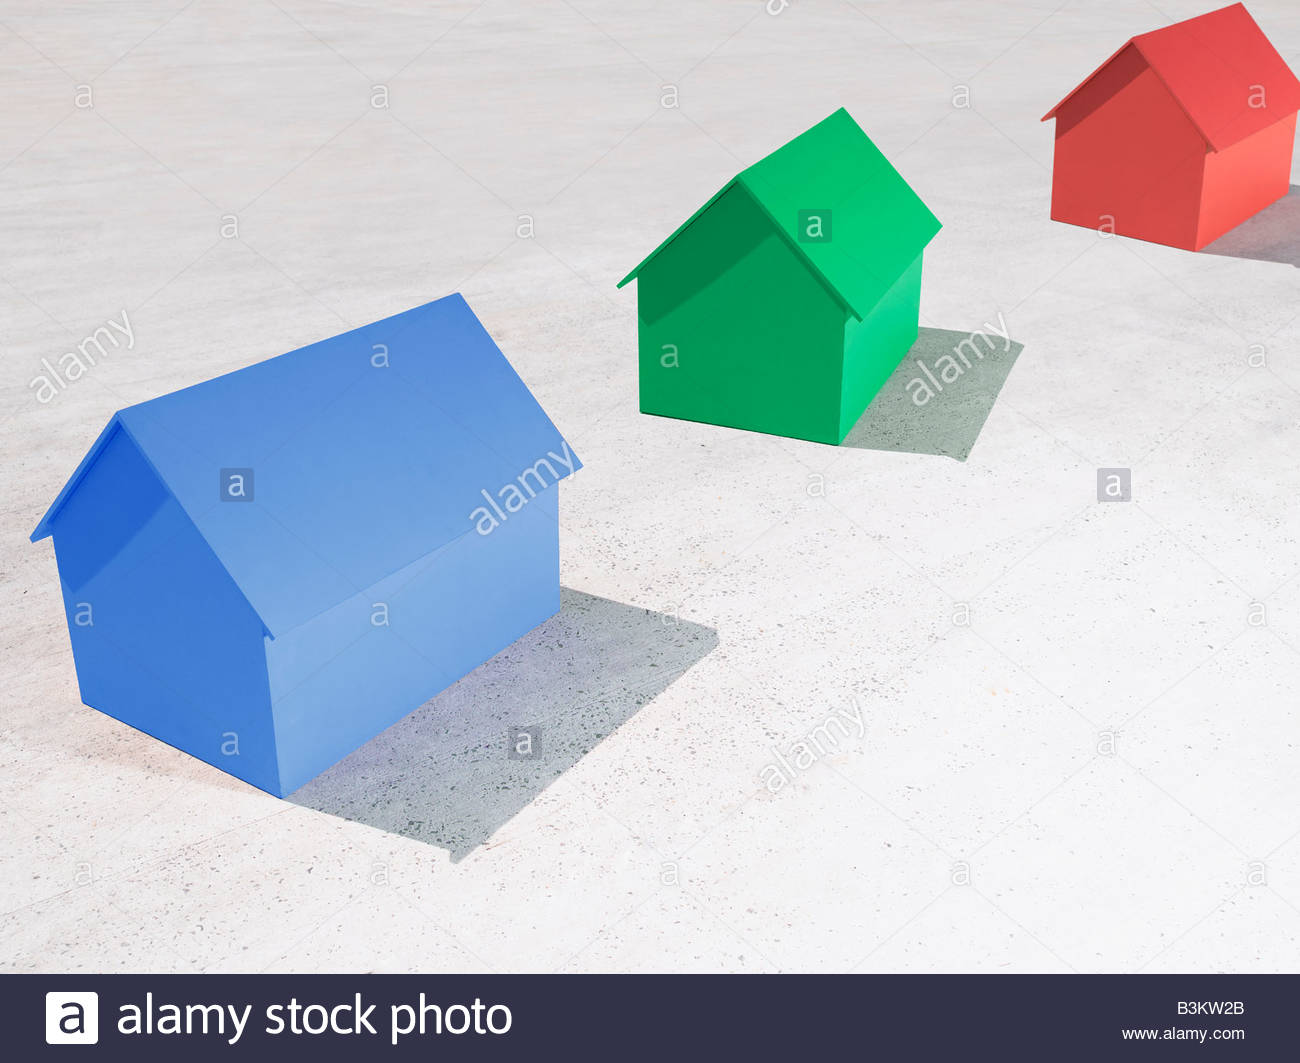 Small model houses - Stock Image